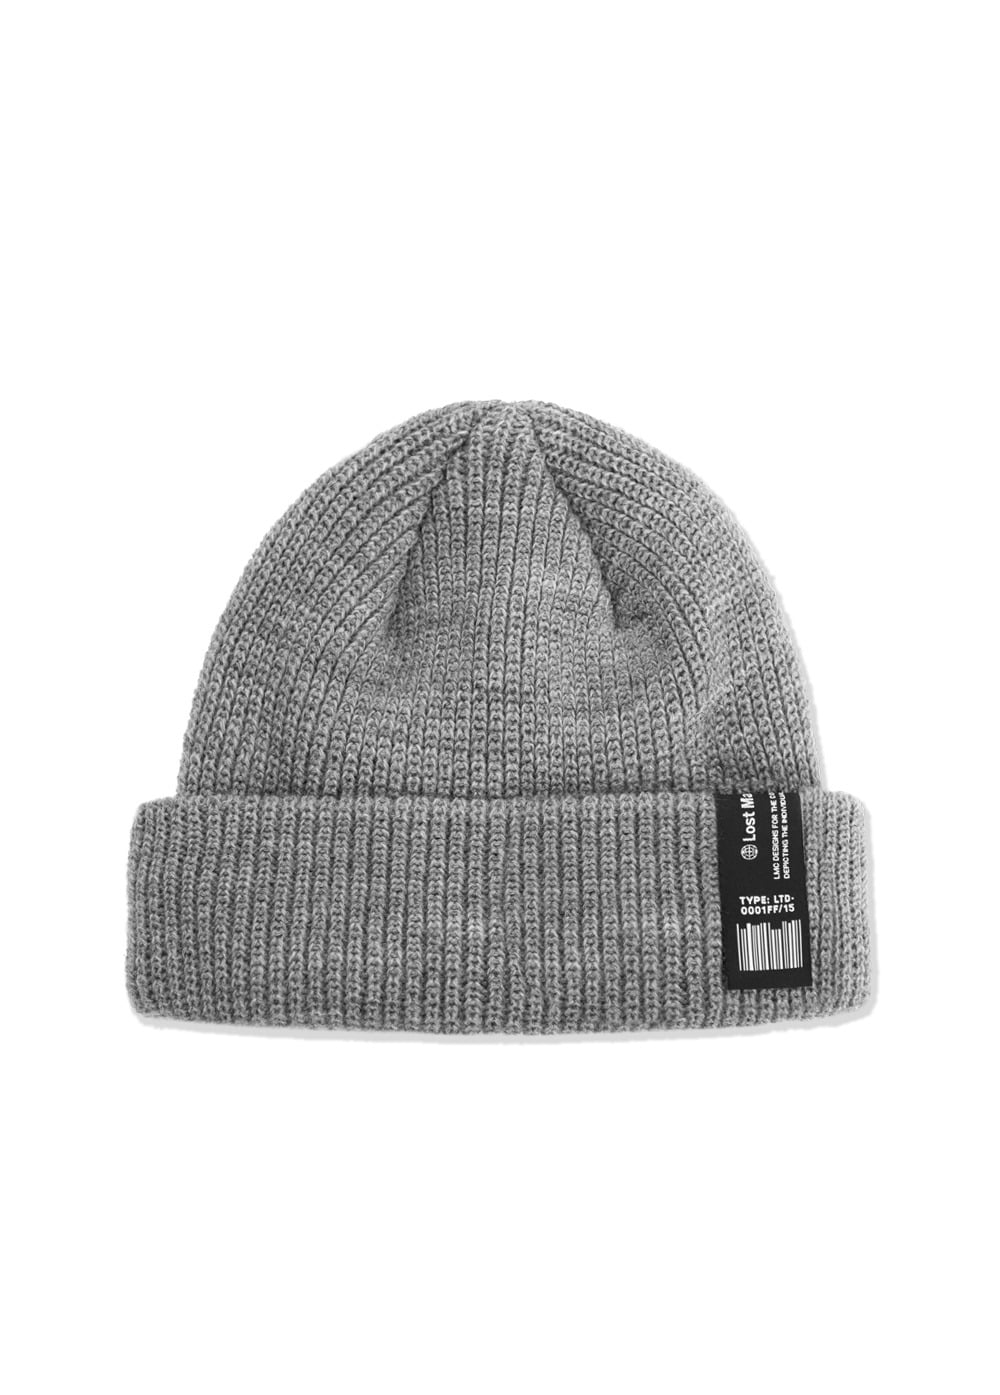 LMC LABEL SHORT BEANIE heather gray